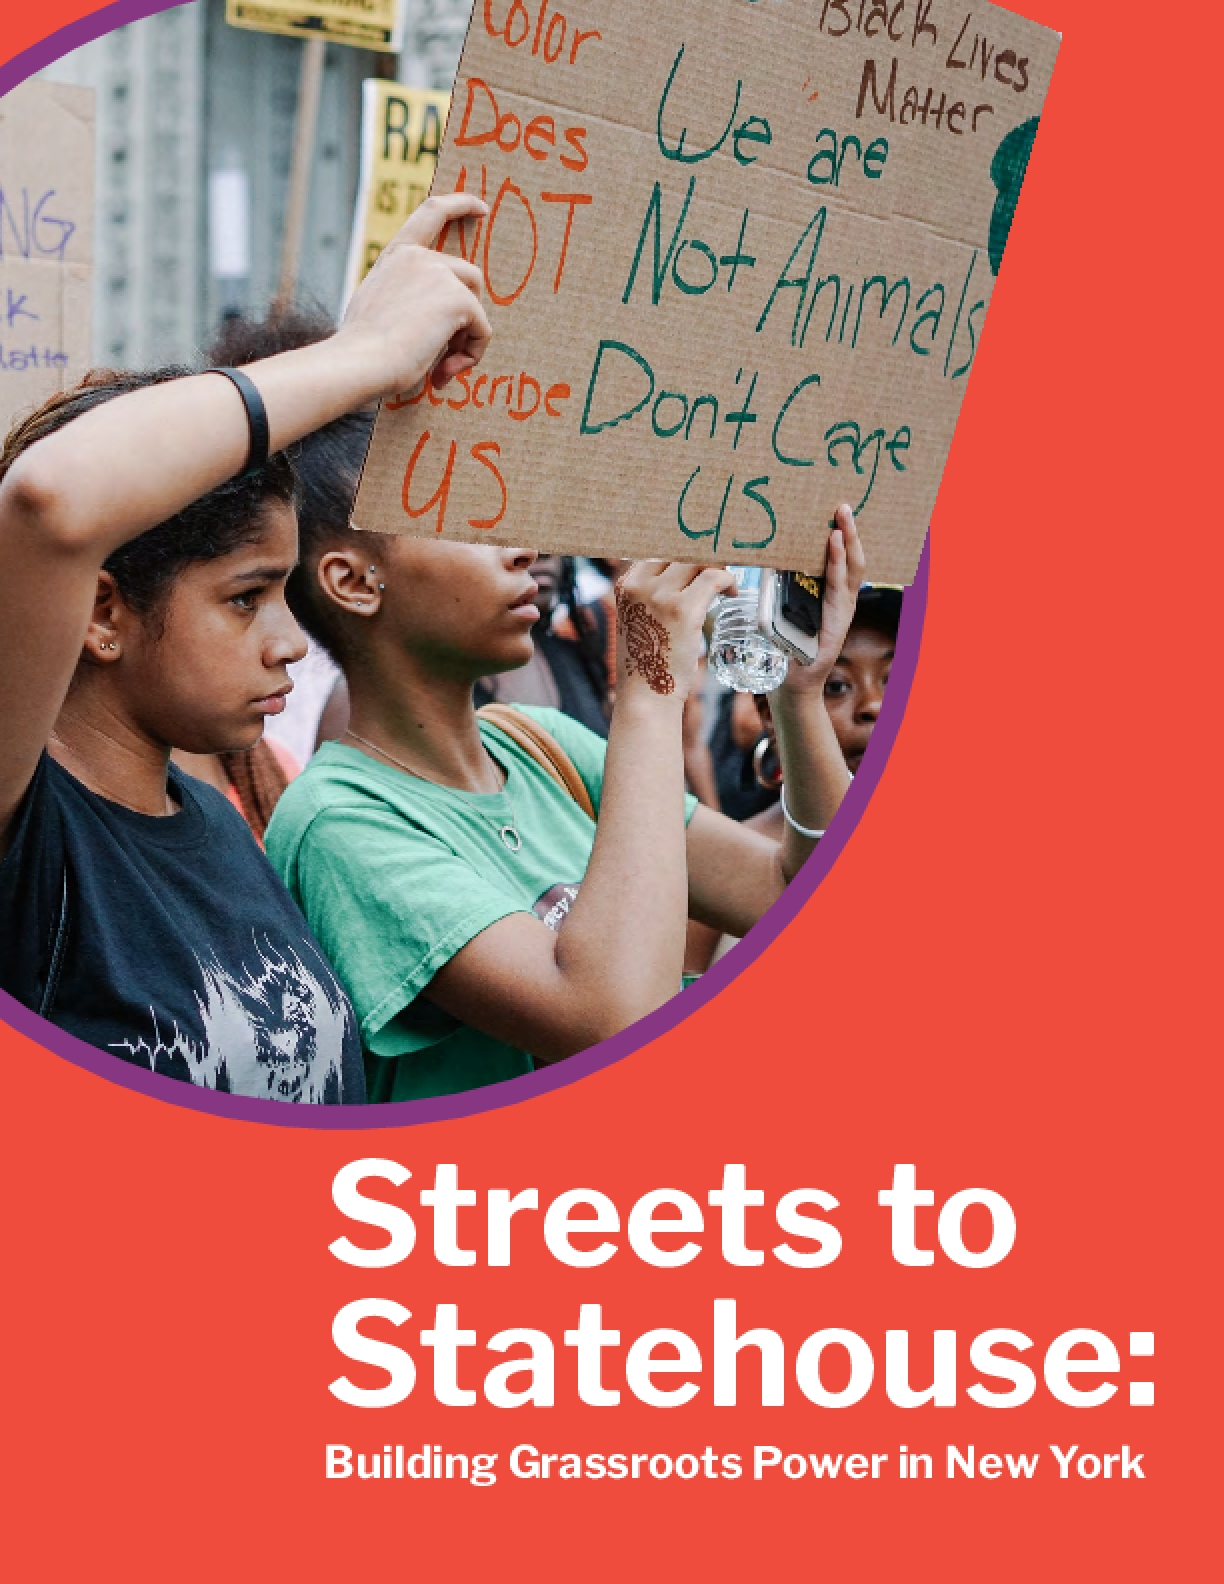 Streets to Statehouse: Building Grassroots Power in New York